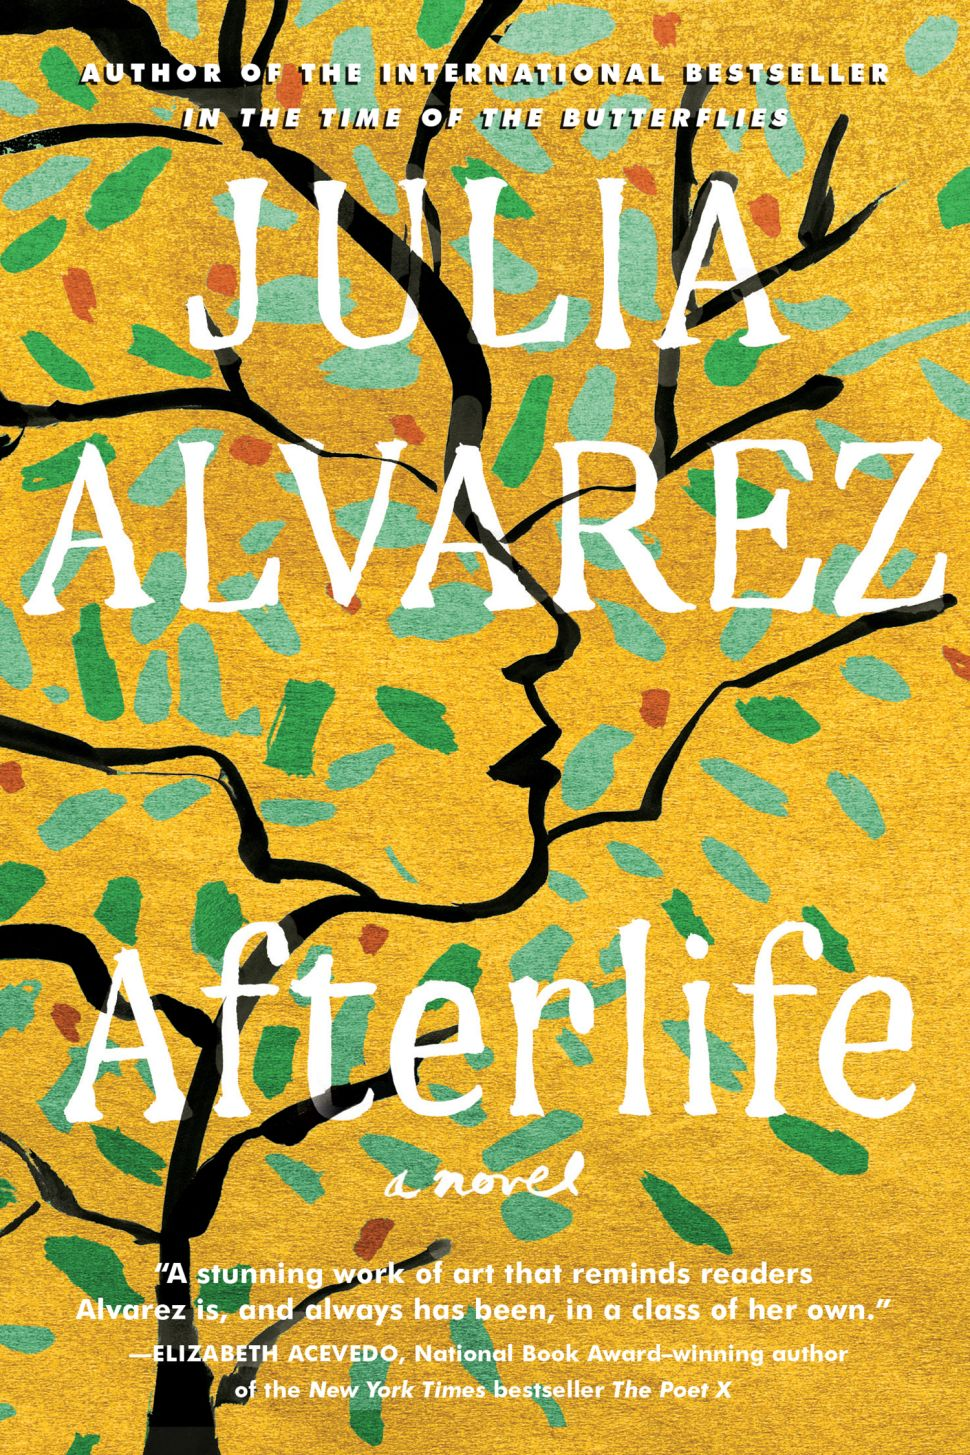 Julia Alvarez on New Book 'Afterlife' and Why Writing About Grief Requires Brevity